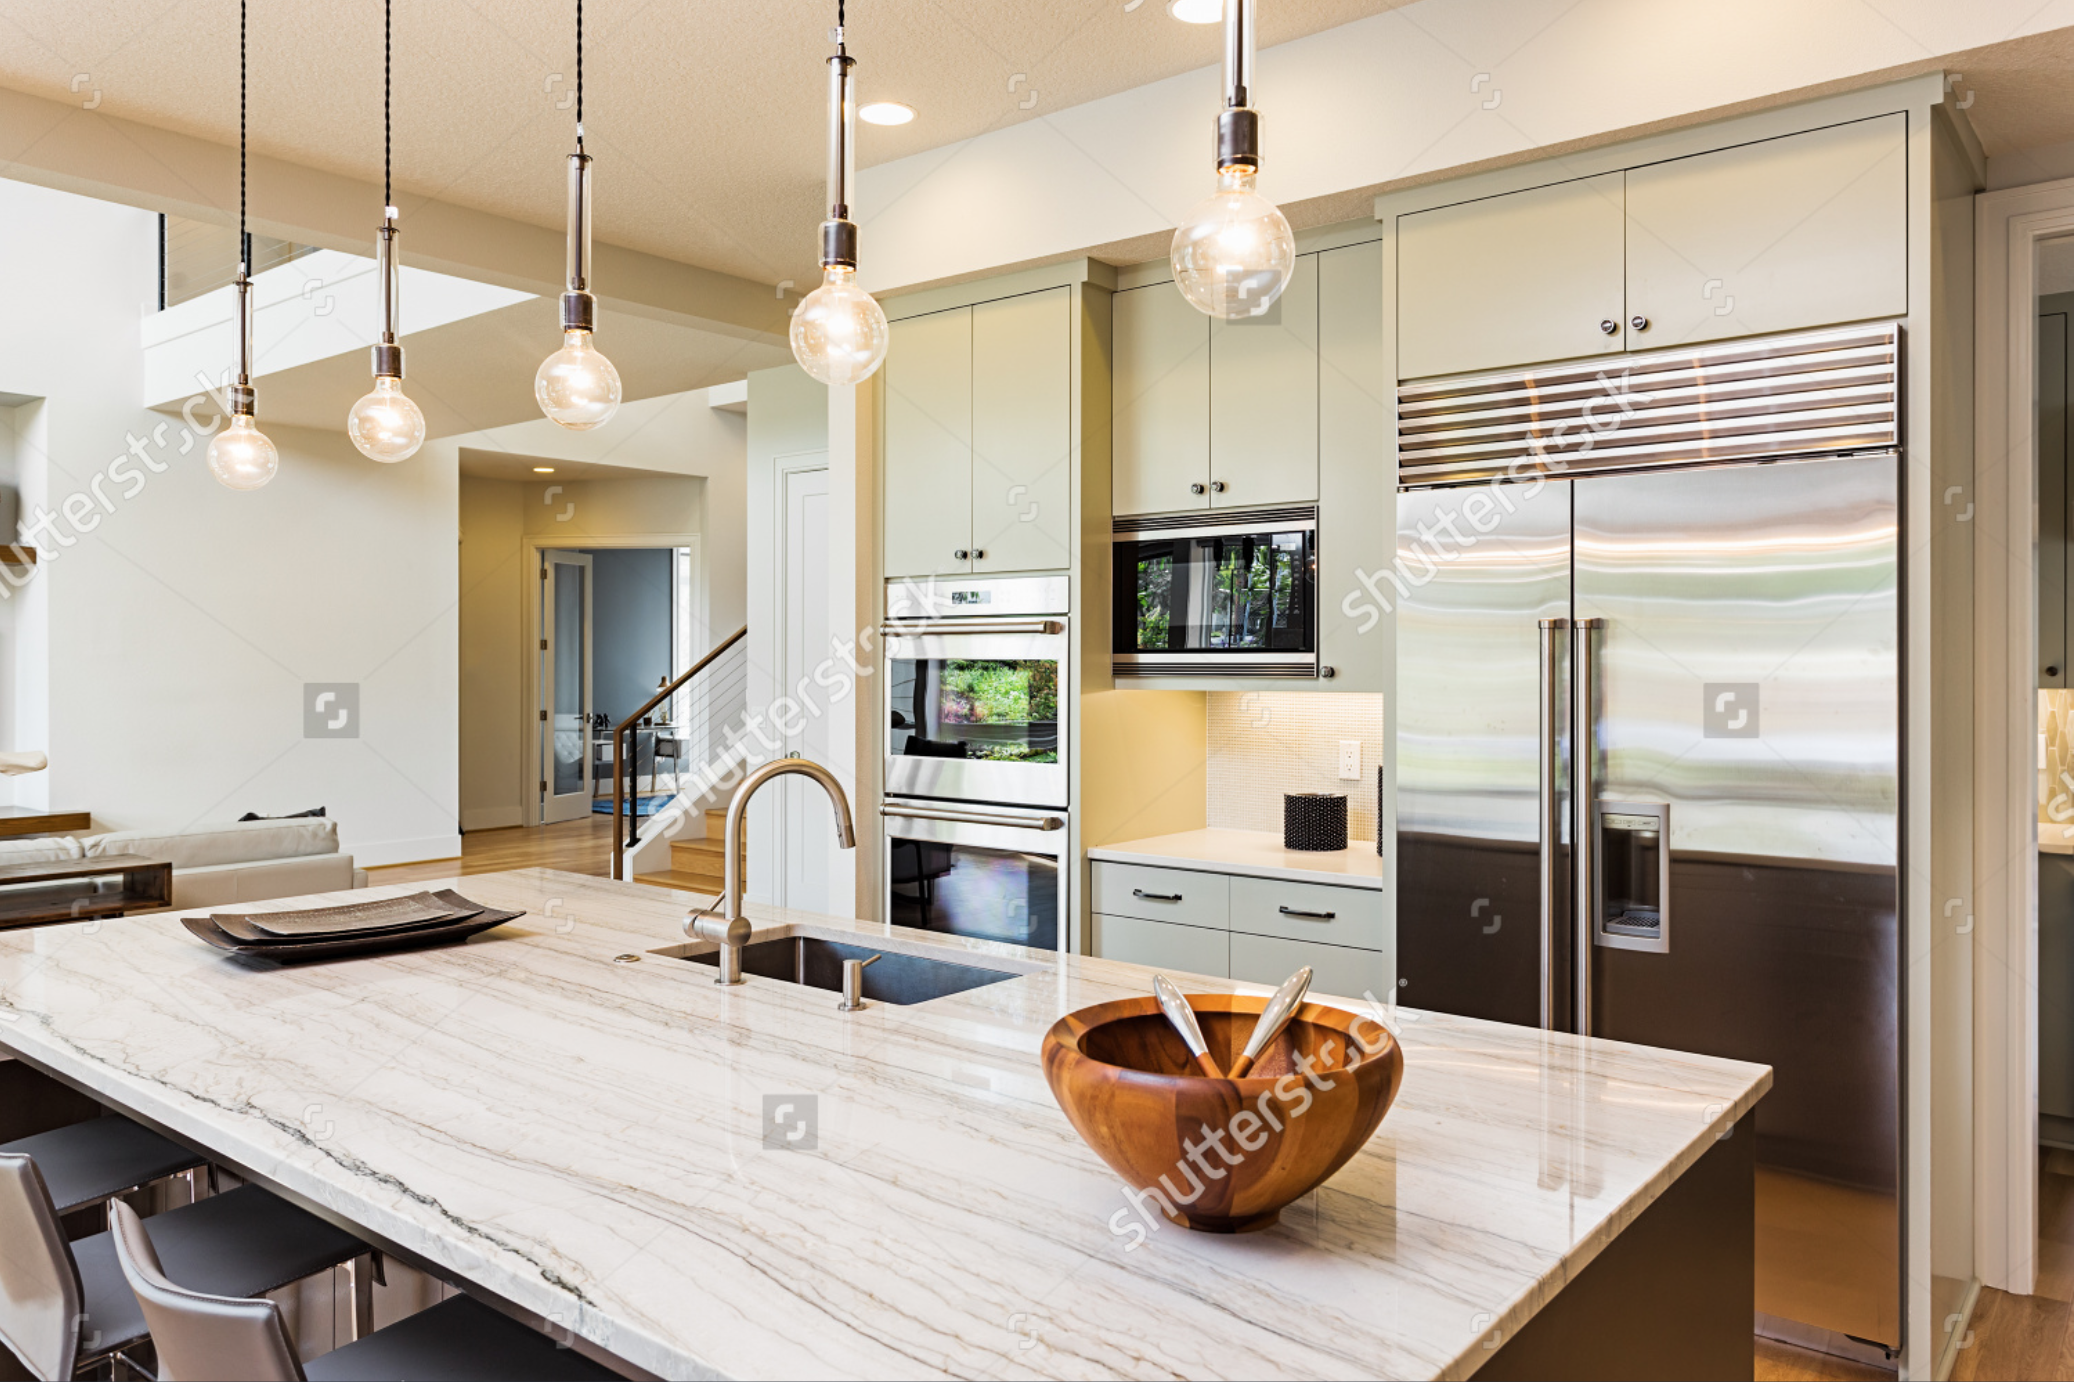 //  https://www.shutterstock.com/pic-318263891/stock-photo-kitchen-in-house-kitchen-interior-with-island-sink-cabinets-stainless-steel-refrigerator-pendant-lights-and-hardwood-floors-in-new-luxury-home.html?src=h_m8CrhBEadaWT1fSYw9Vg-1-13